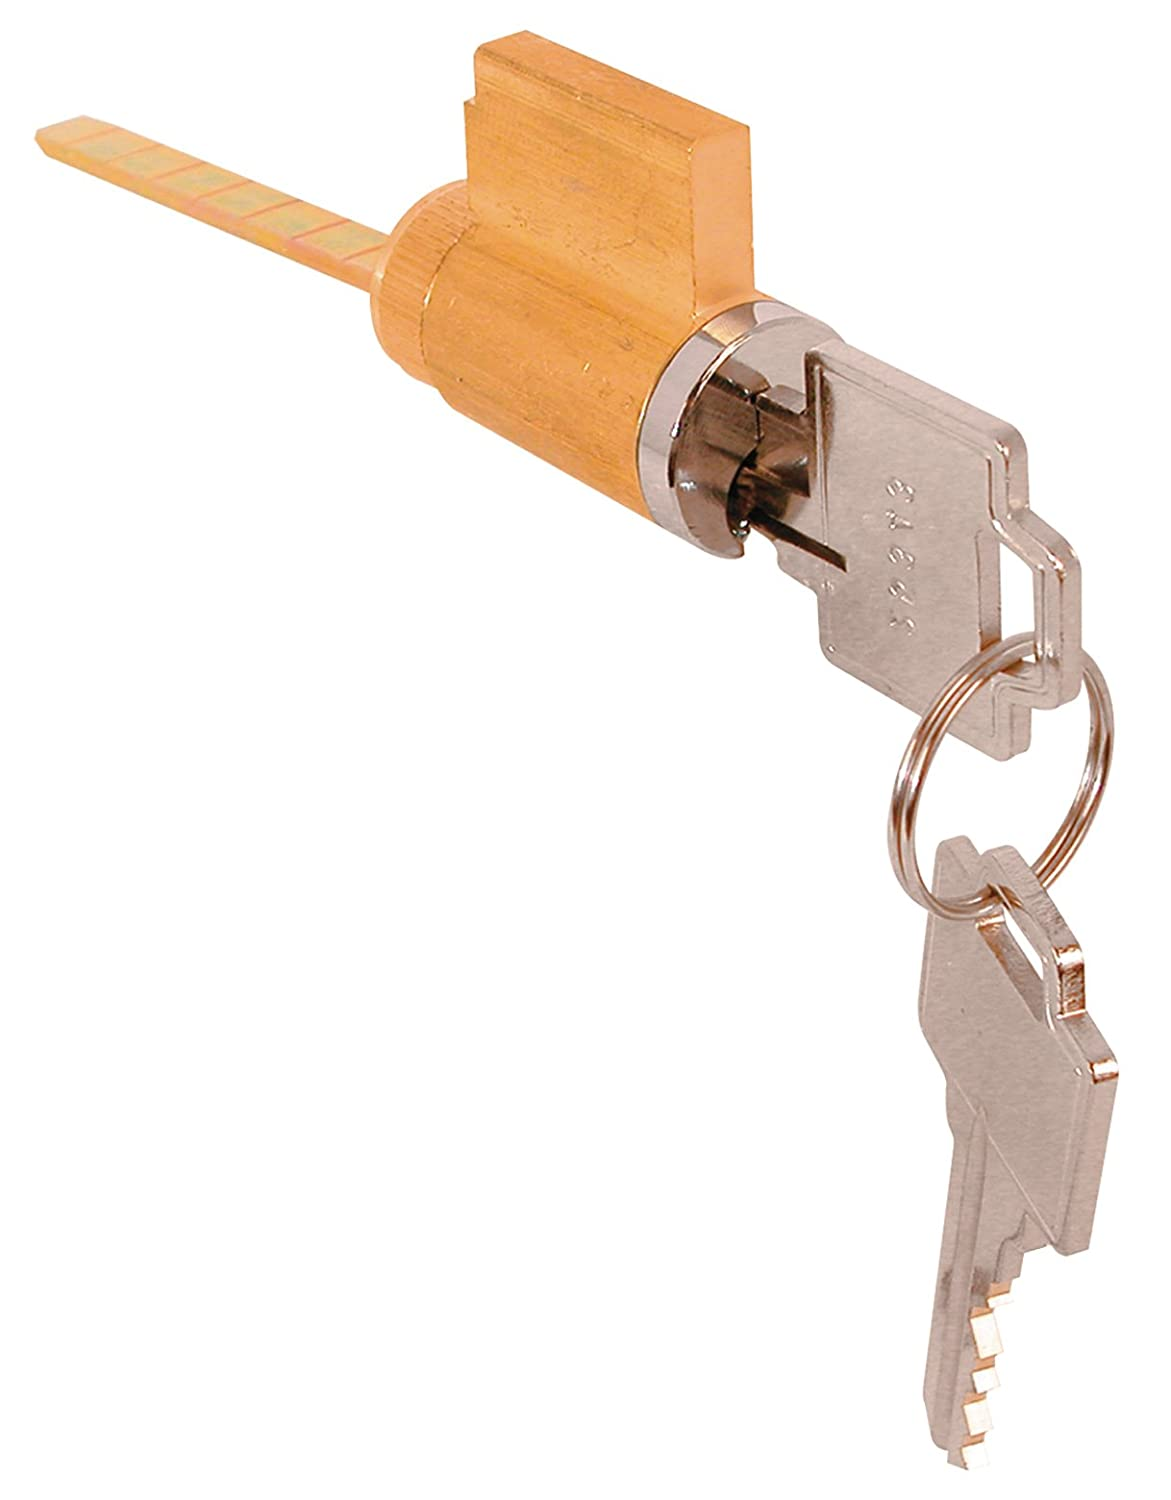 Prime-Line E 2000 1-7/8-Inch Tailpiece Cylinder Lock for Weiser, Kwikset and Weslock Models